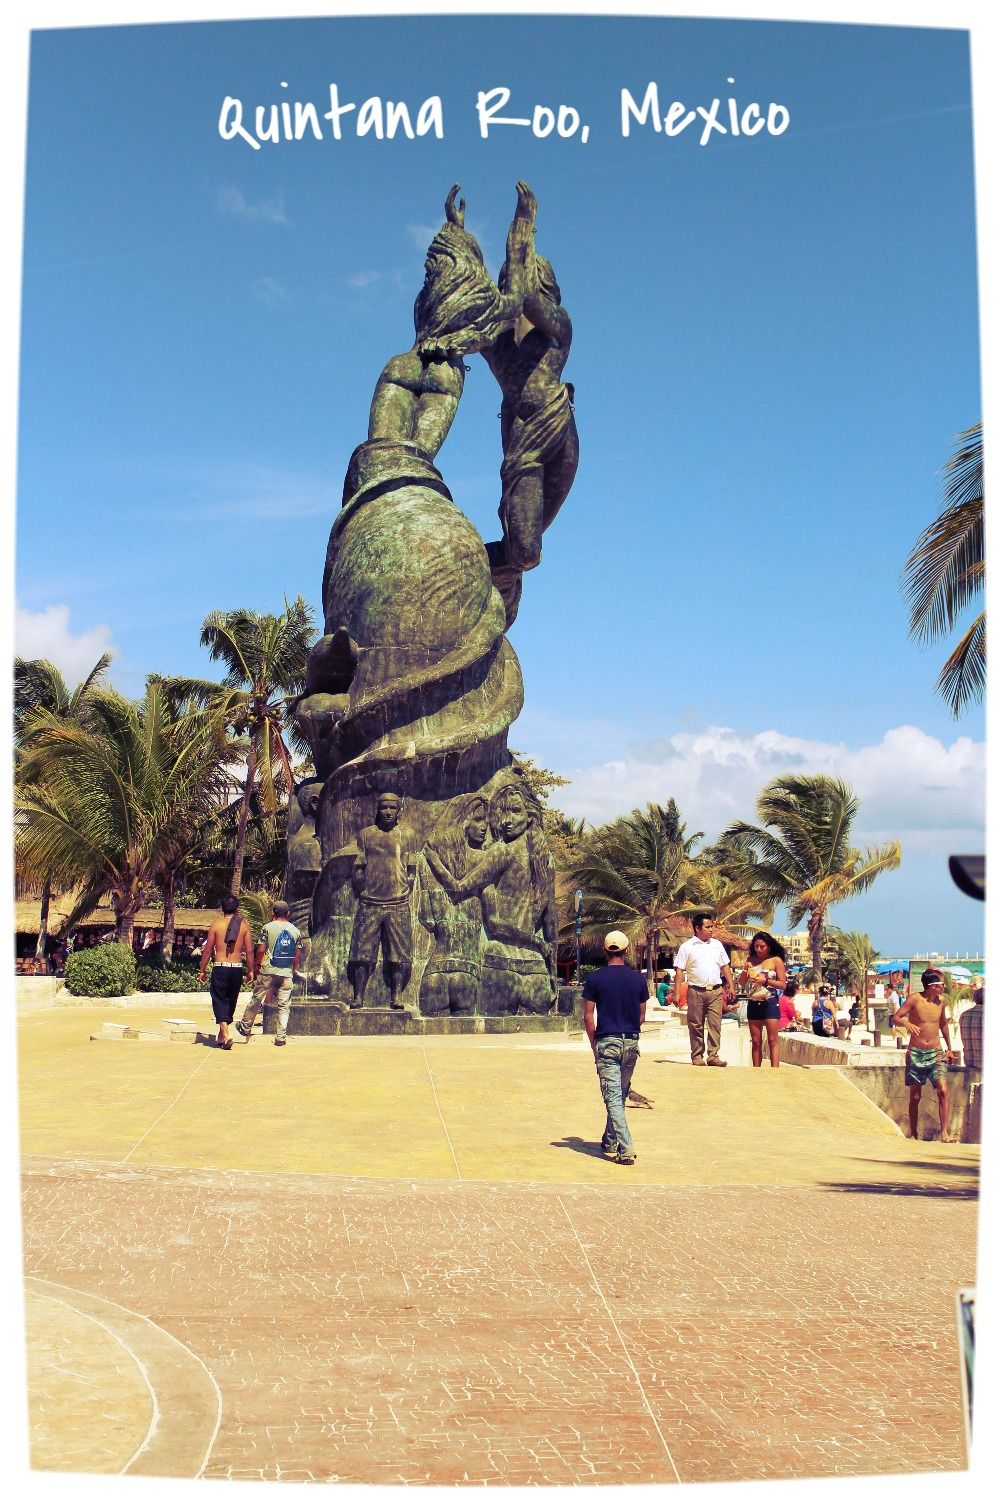 Photography, Outdoor Photography, Statue, Sculpture, Quintana Roo (Mexico), Playa del Carmen (Mexico)